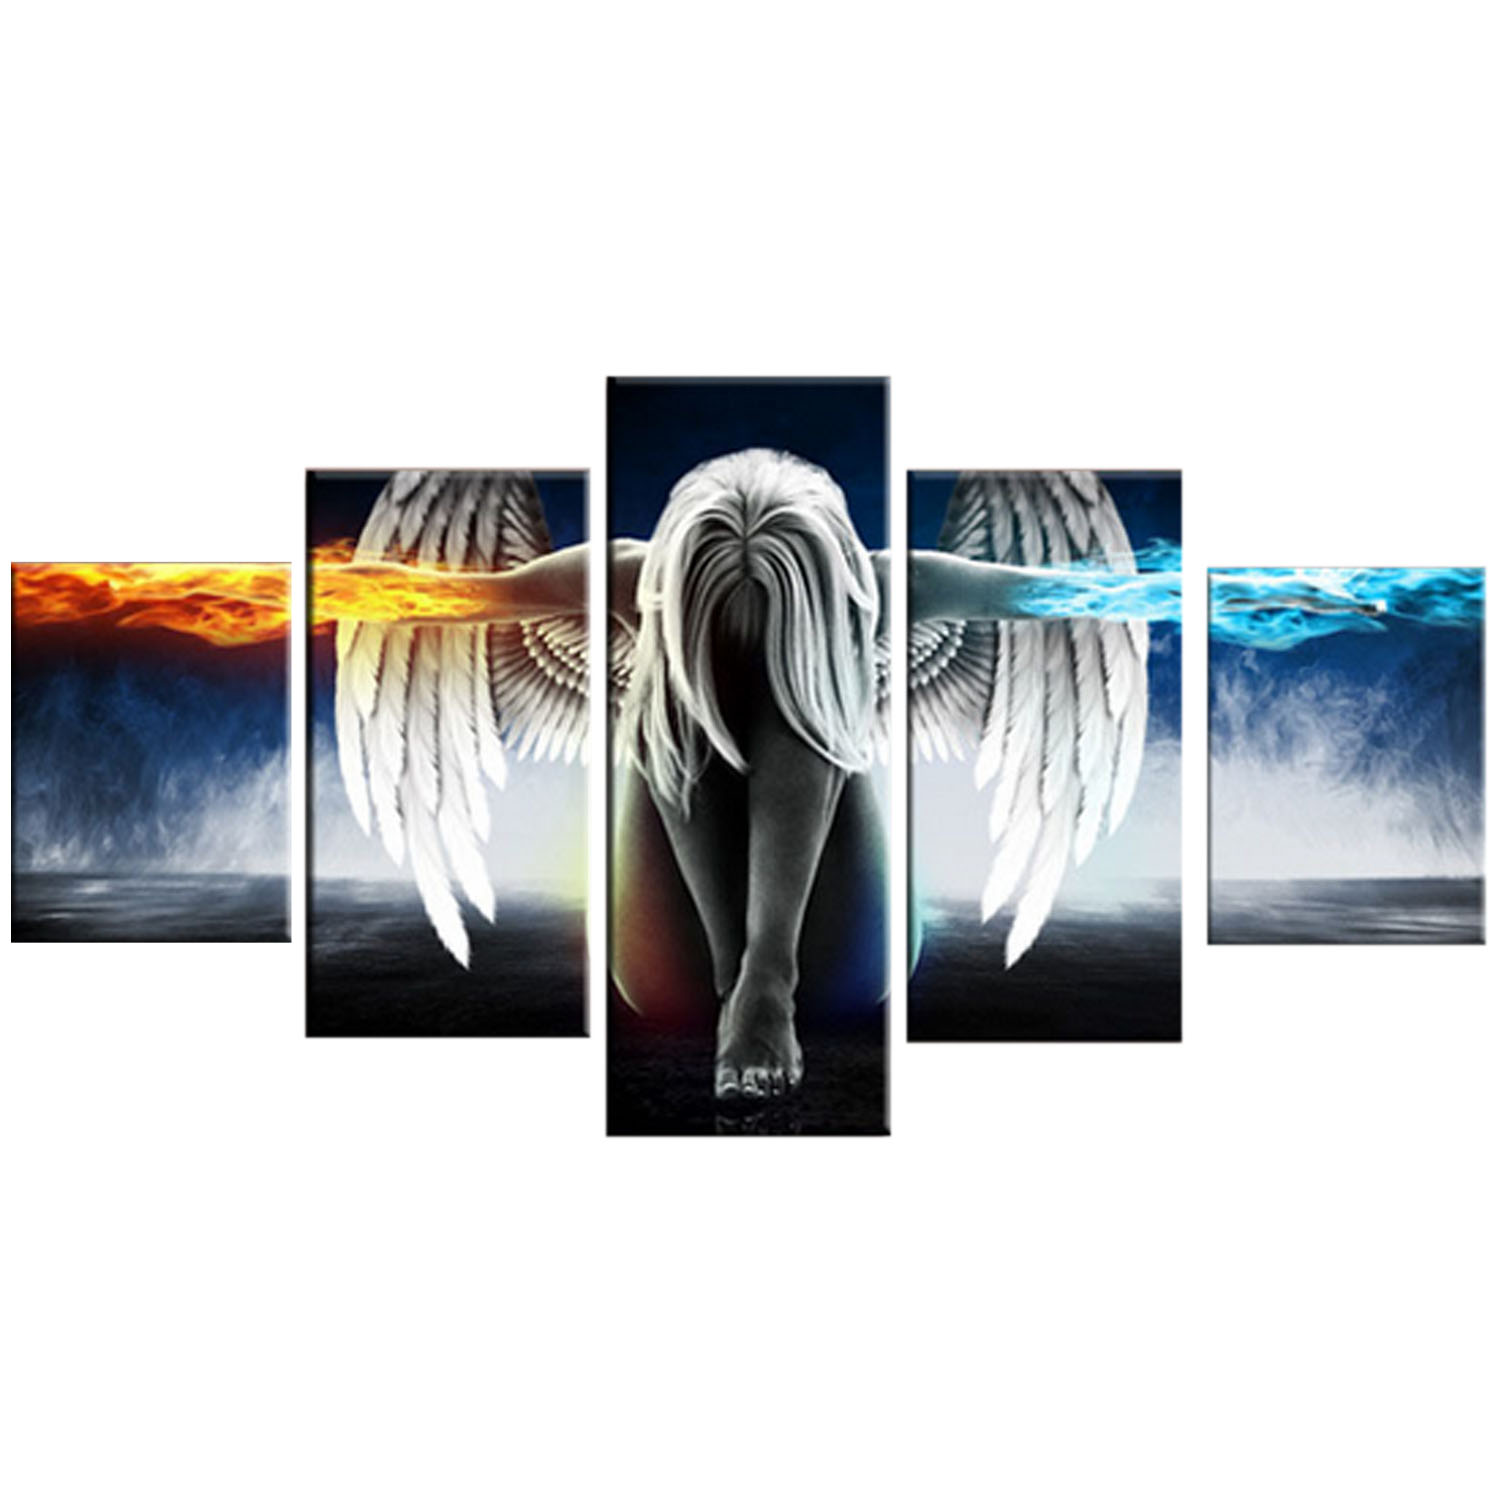 5 PCS Angel Style Printed Canvas Set Decoration Wall Art for Home Living Room Bedroom Office Hotel Pub - intl